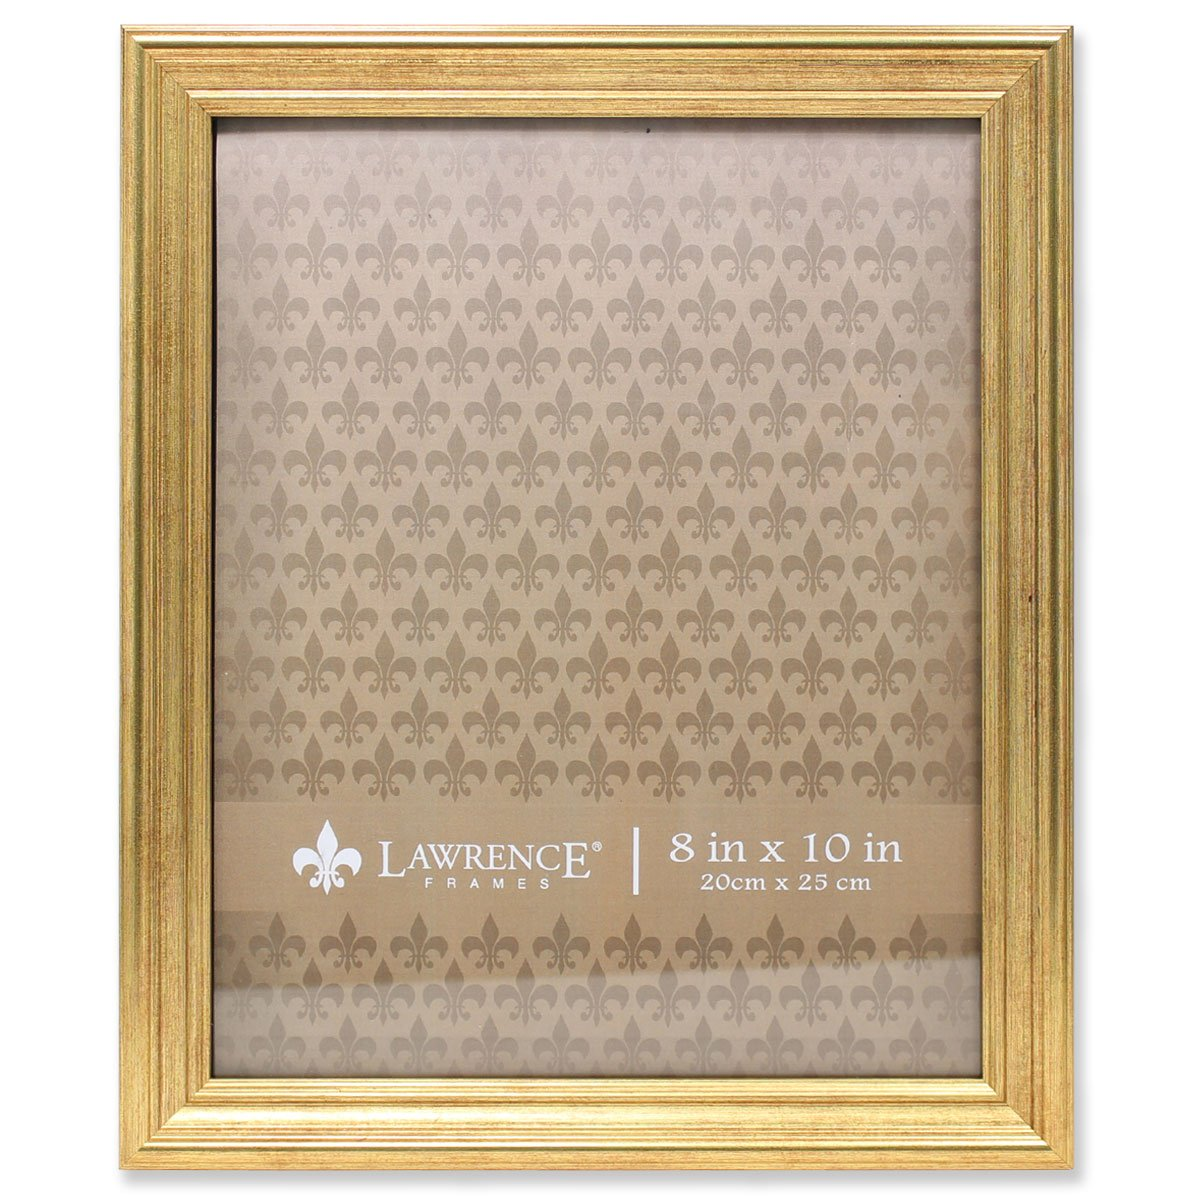 Lawrence Frames Sutter Gold 8x10 Picture Frame, 8 by 10-Inch, by Lawrence Frames